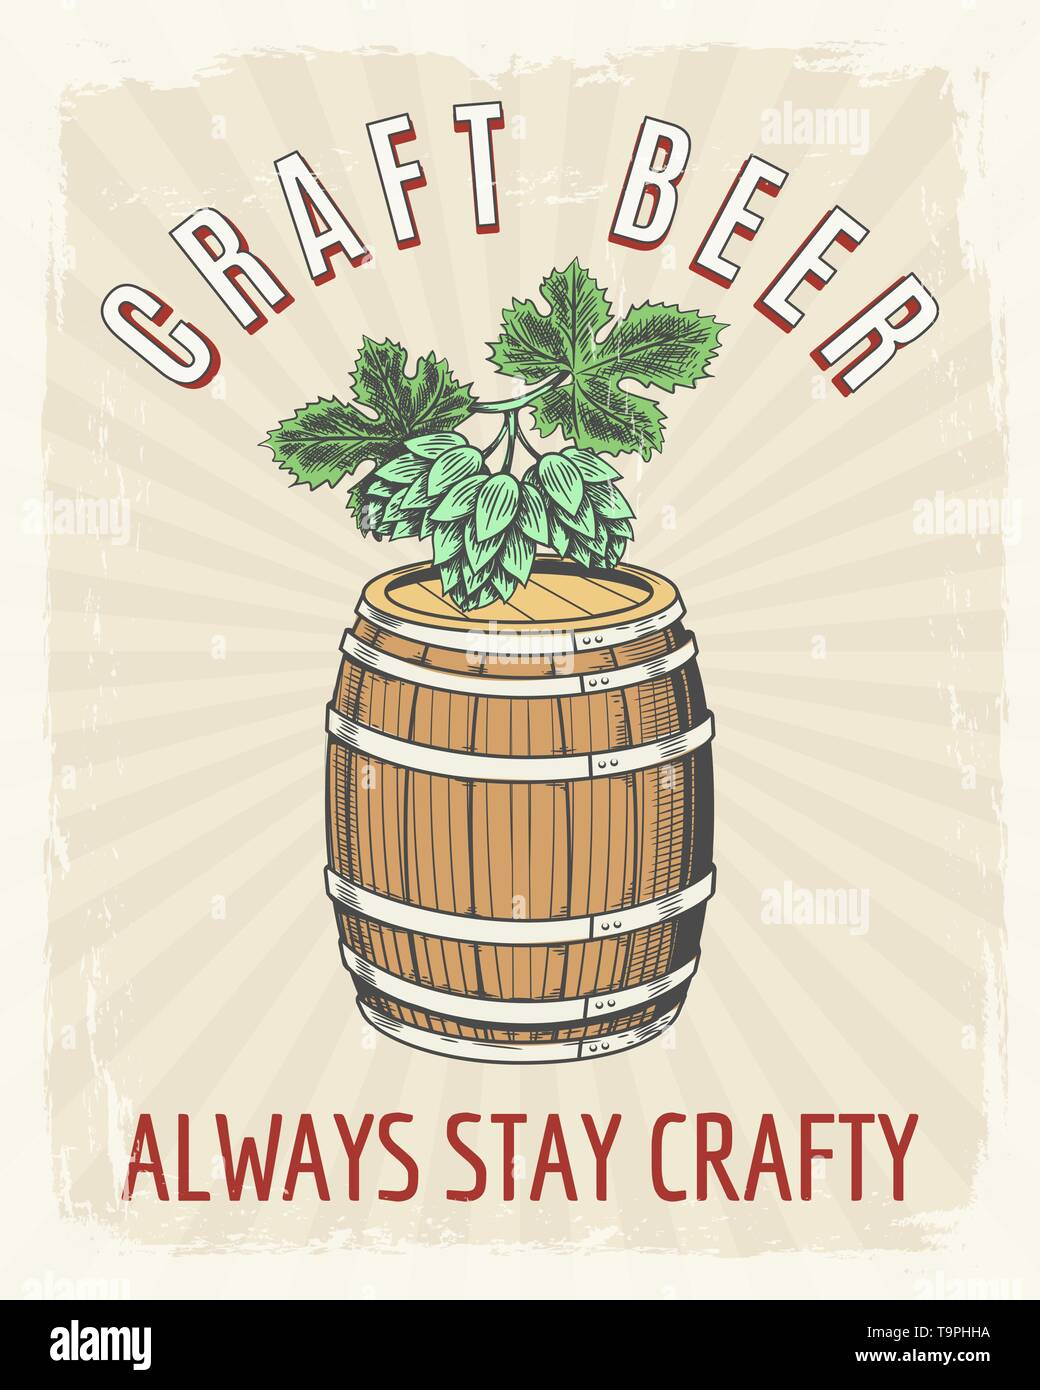 Craft beer vintage poster. Artisanal crafted brewing good ale vector retro illustration, crafting beer barrel drawing graphics - Stock Vector